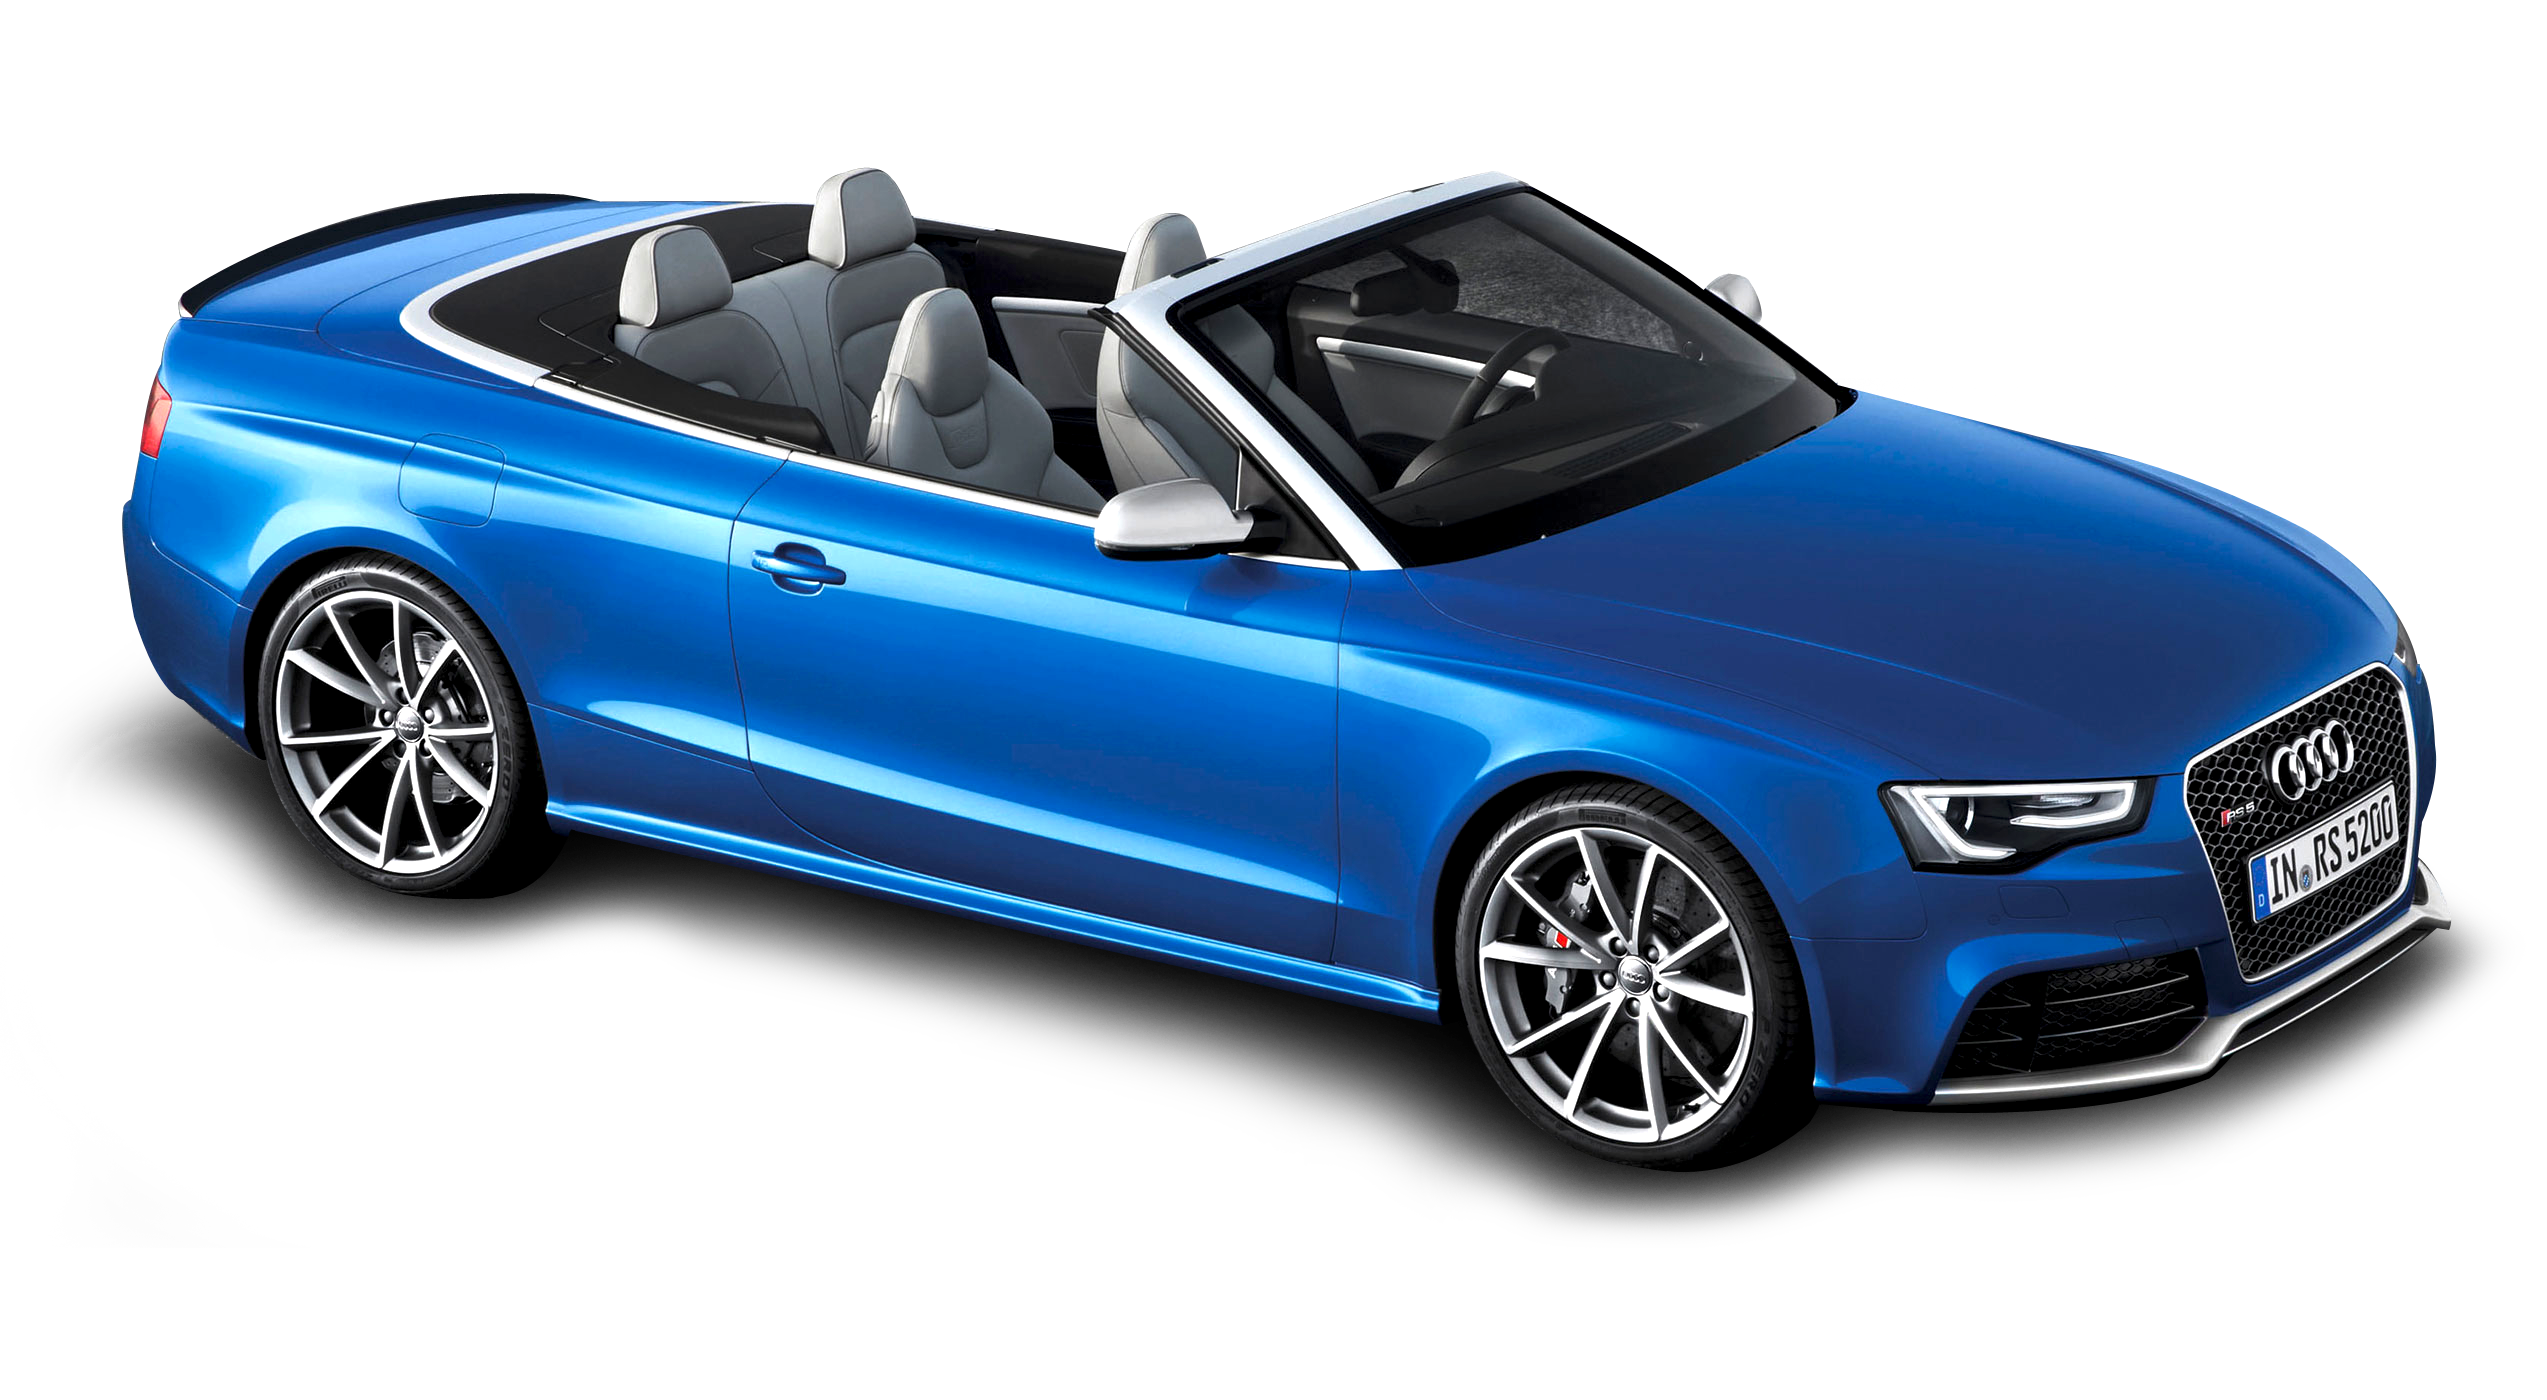 Blue Audi Car Png Image Purepng Free Transparent Cc0 Png Image Library